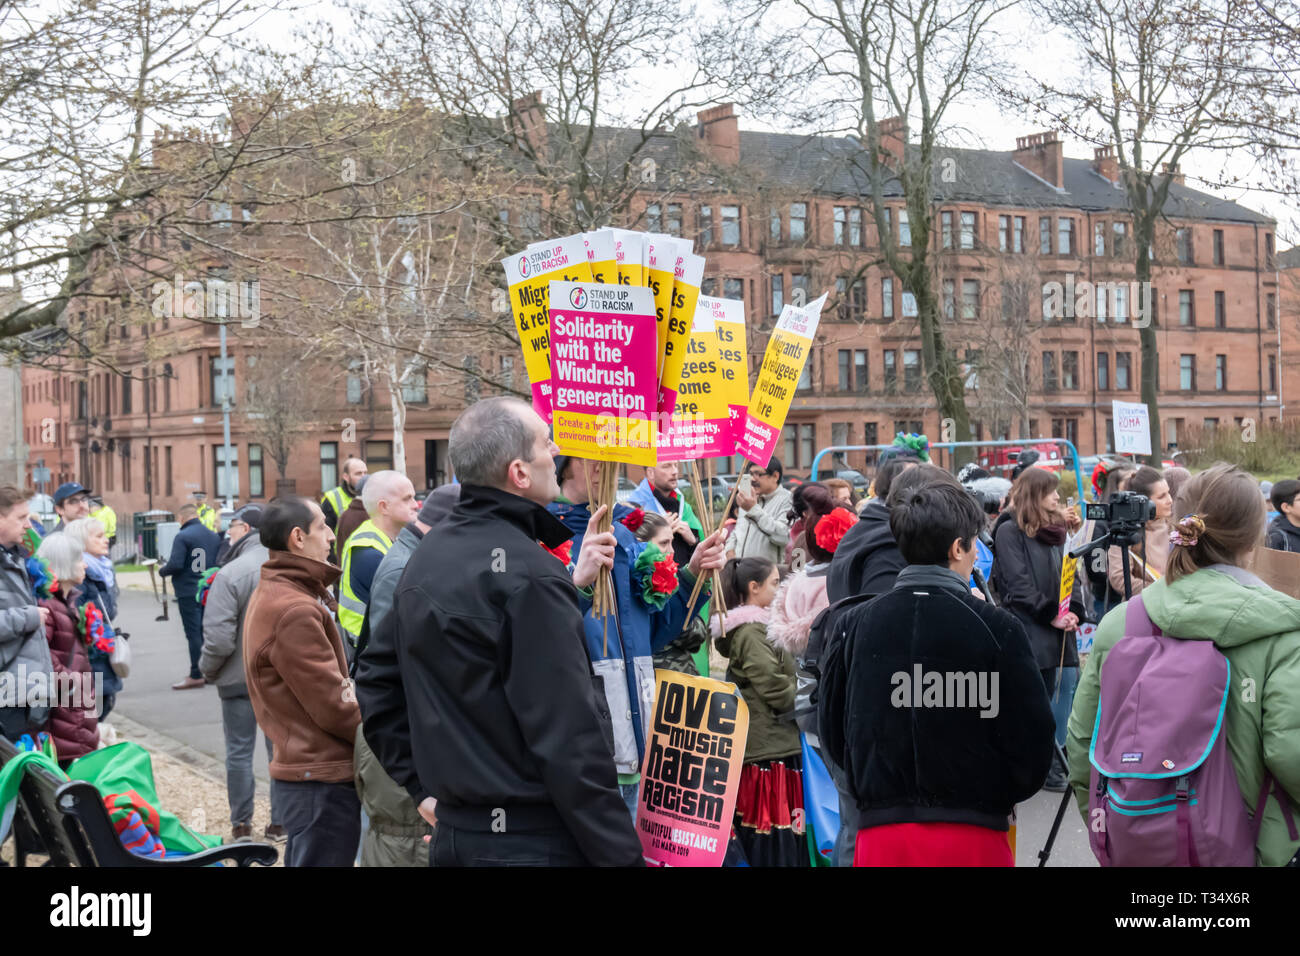 Glasgow, Scotland, UK. 6th April, 2019: Marchers gather at the start of the annual International Roma Day community procession through the streets of Govanhill to celebrate Romani culture and raise awareness of the issues facing Romani people. Credit: Skully/Alamy Live News - Stock Image